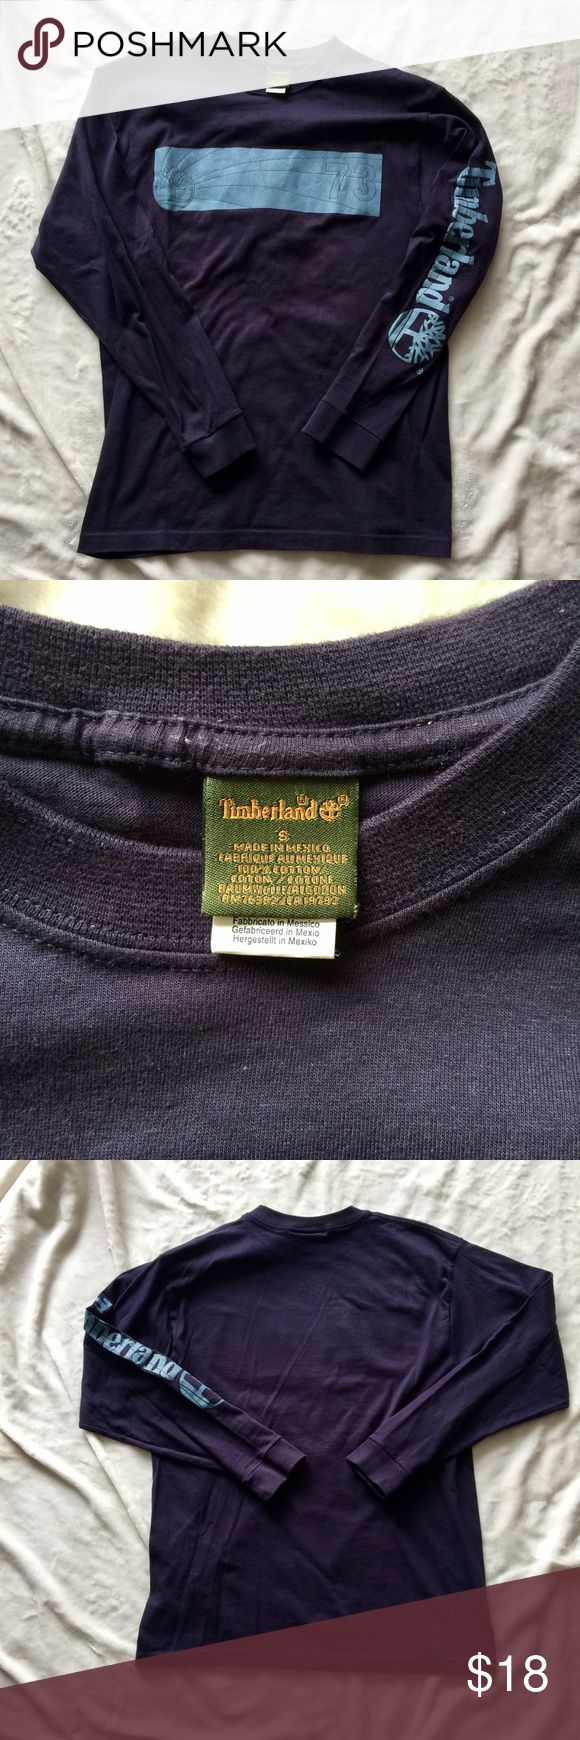 Timberland Men Long Sleeves T shirt Pre-owned Timberland Men Long Sleeves T shirt in size Small slightly worn , still in very good condition Timberland Shirts Tees - Long Sleeve